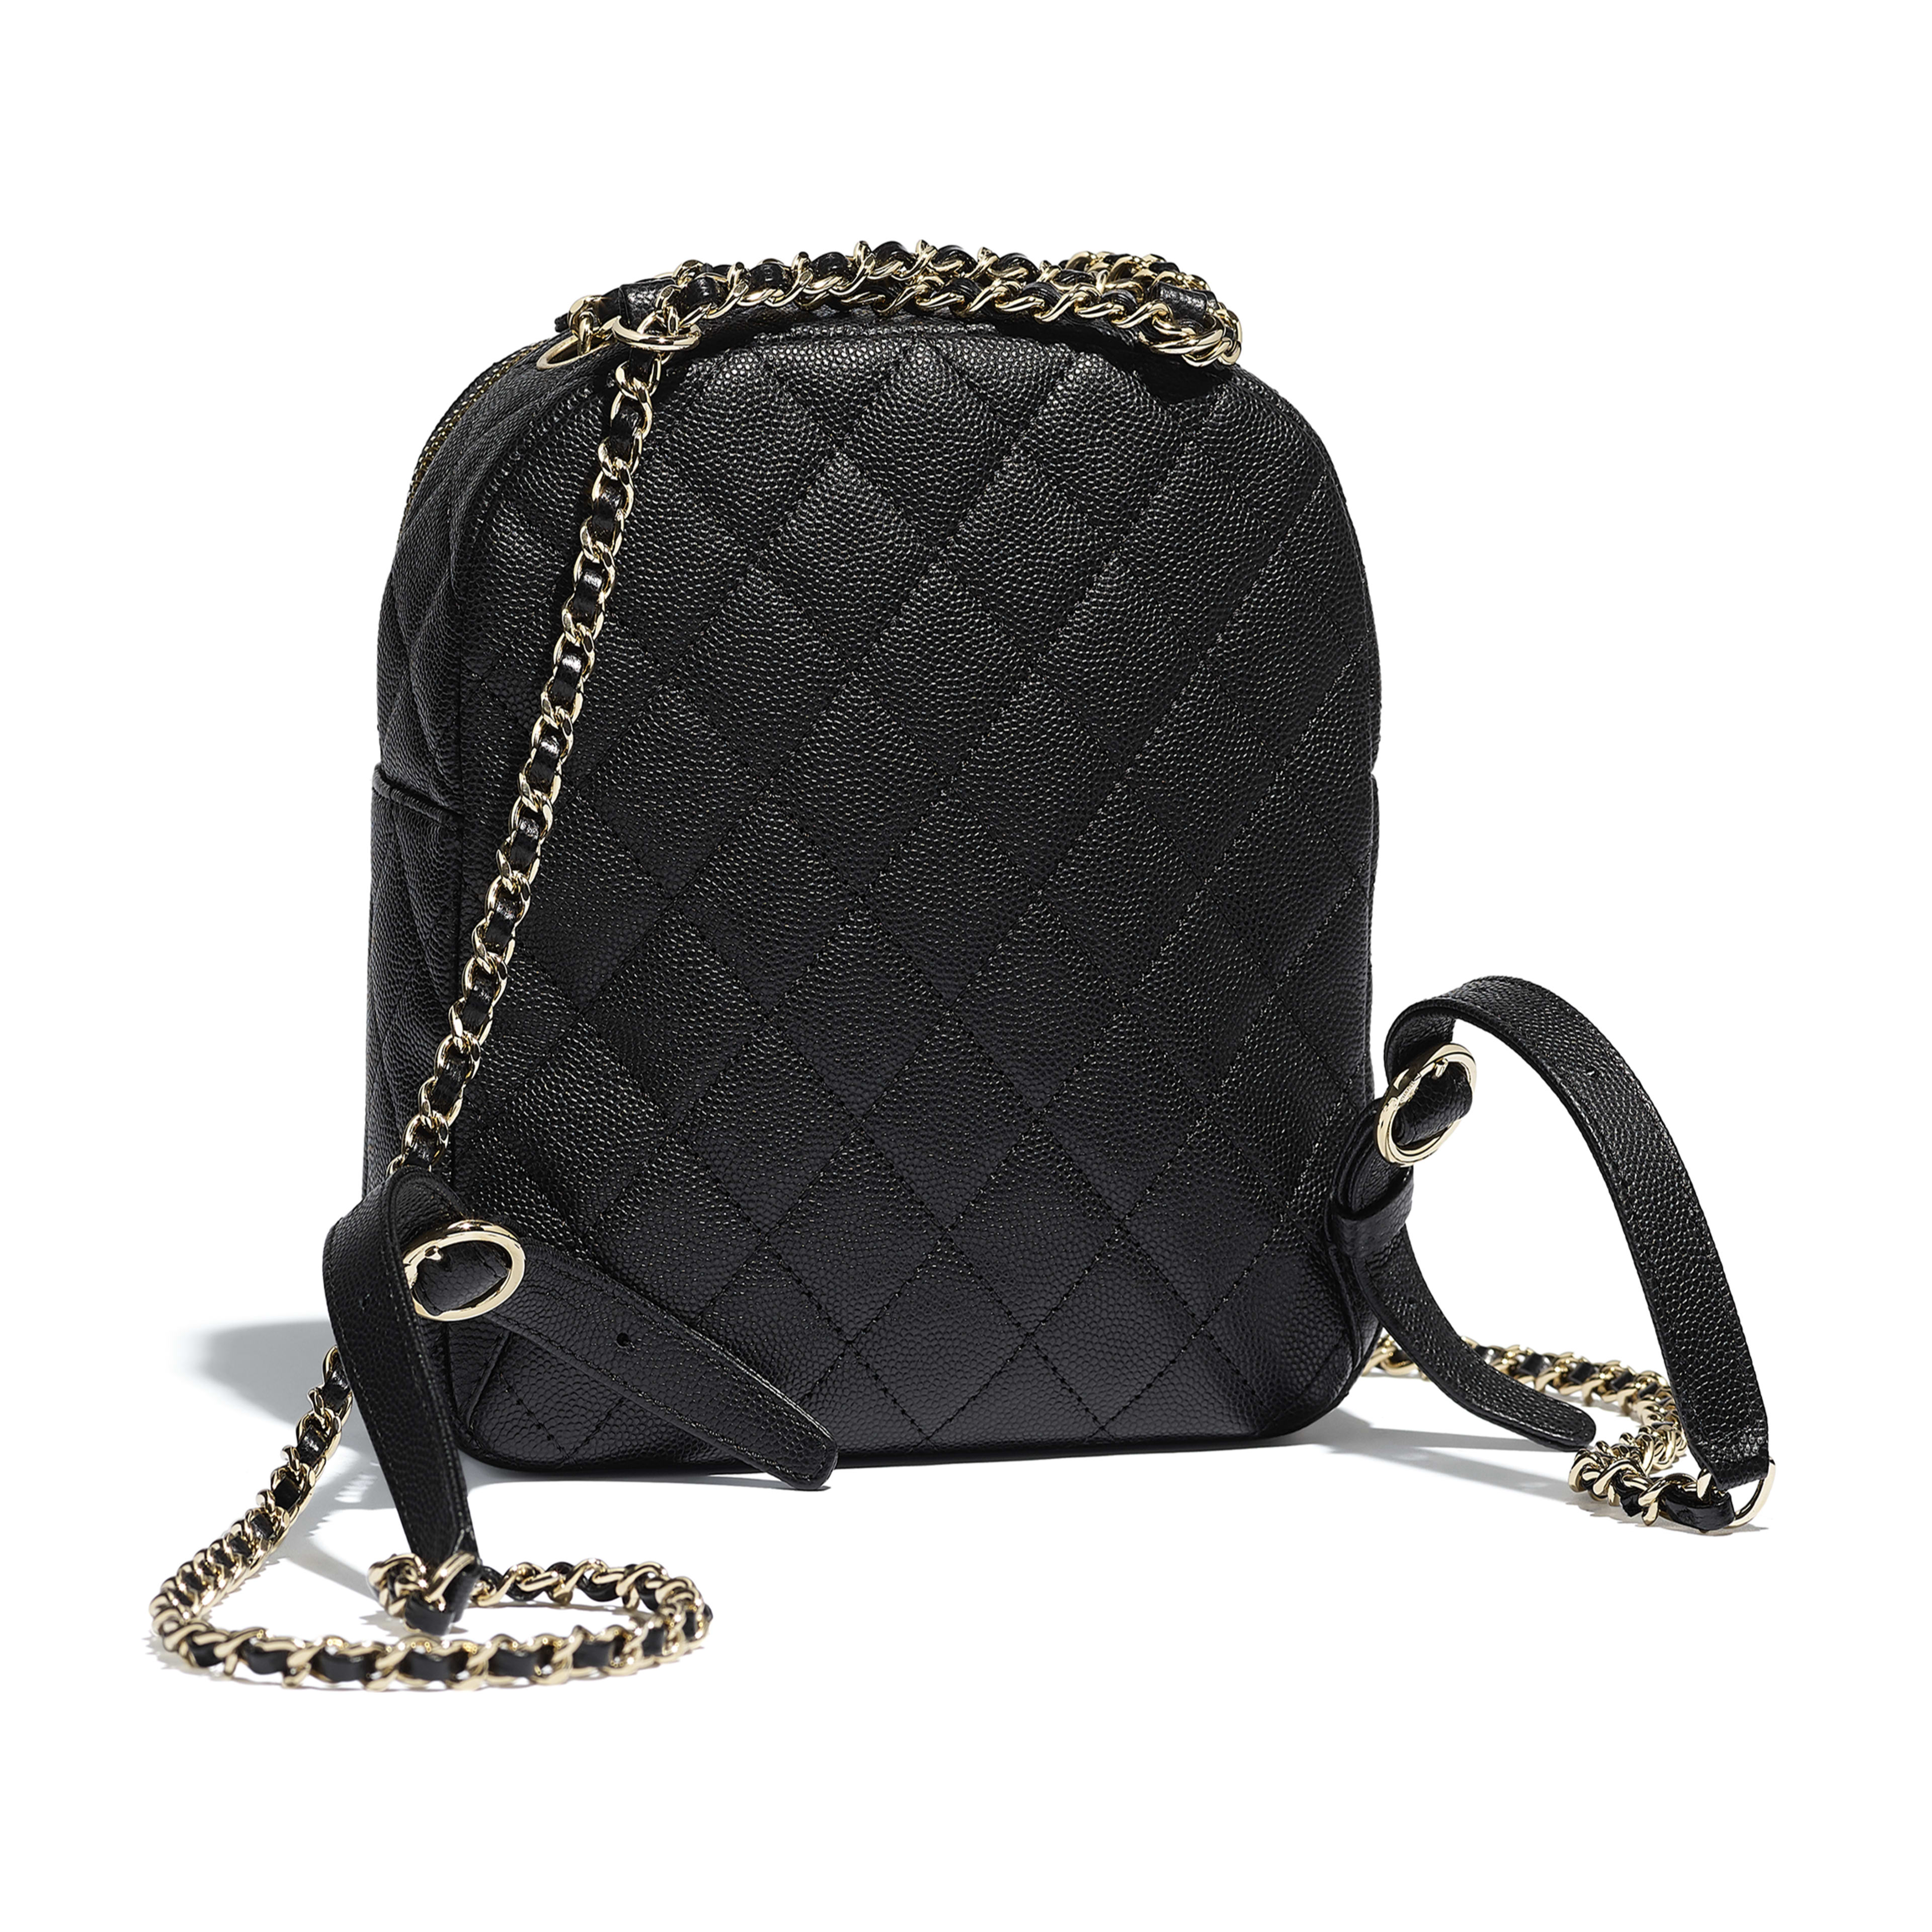 Backpack - Black - Grained Calfskin & Gold-Tone Metal - Alternative view - see full sized version